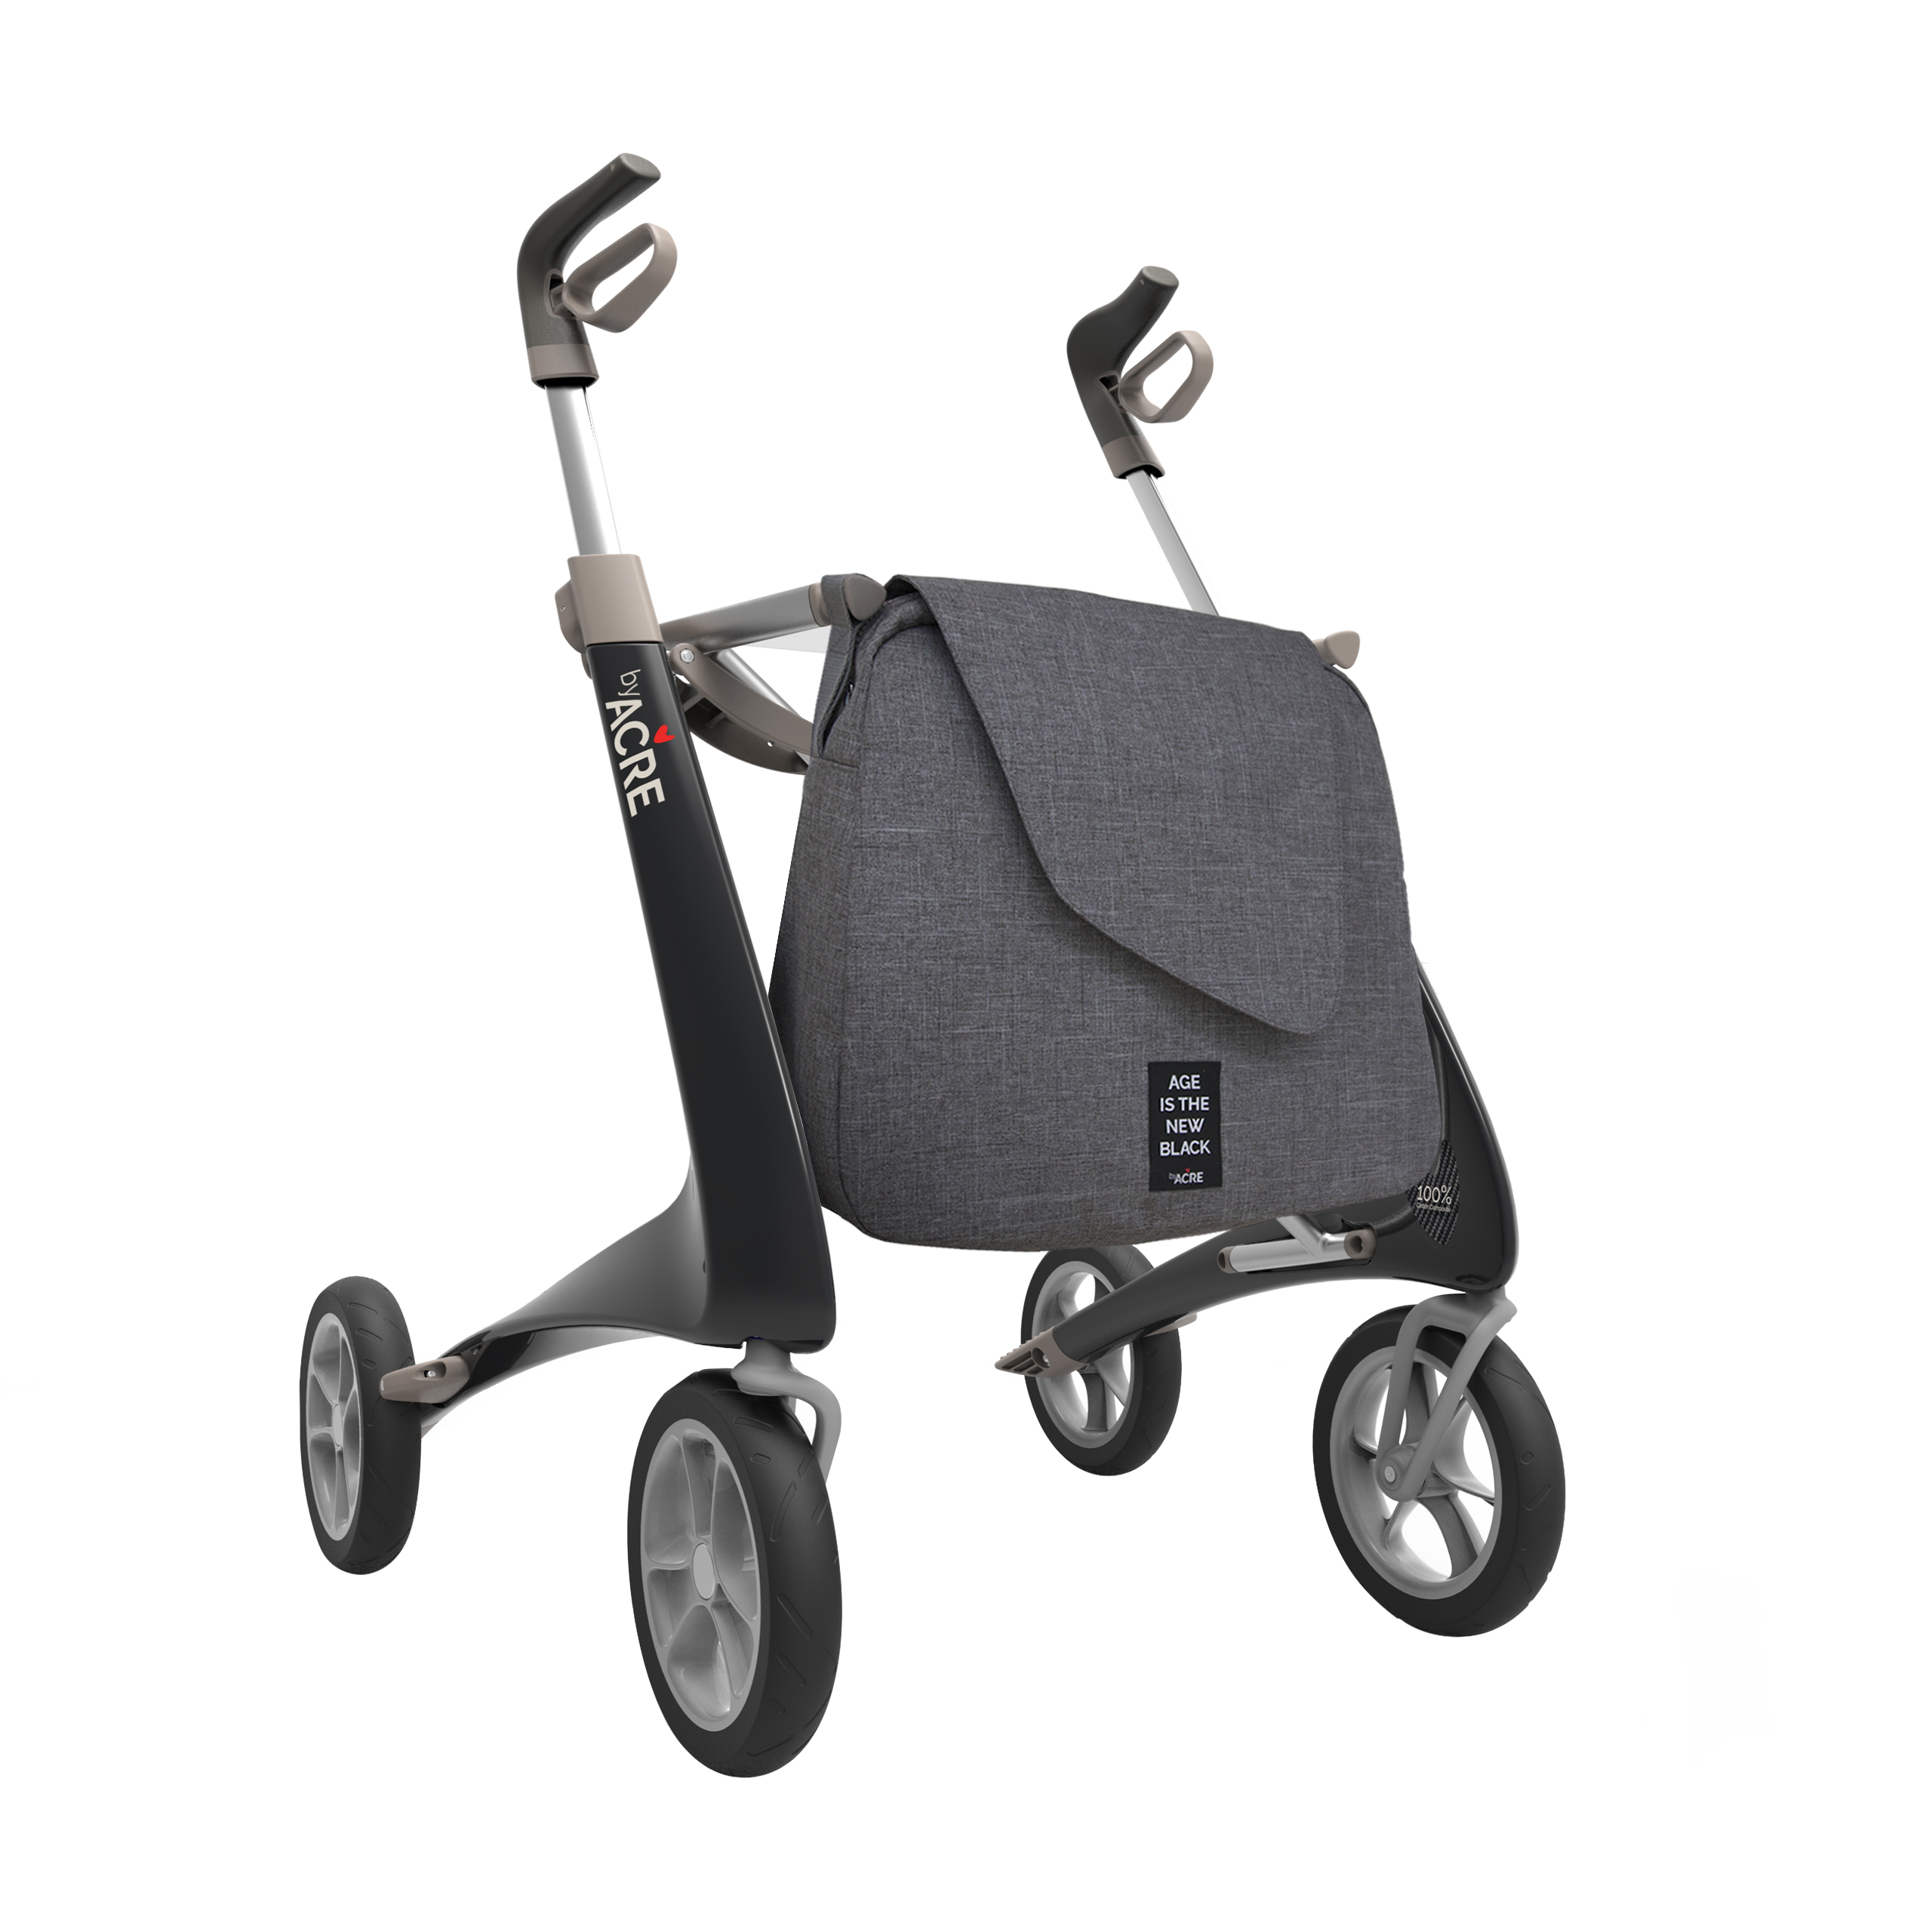 Shopper bag on the black Carbon Ultralight Rollator byACRE - seen in perspective